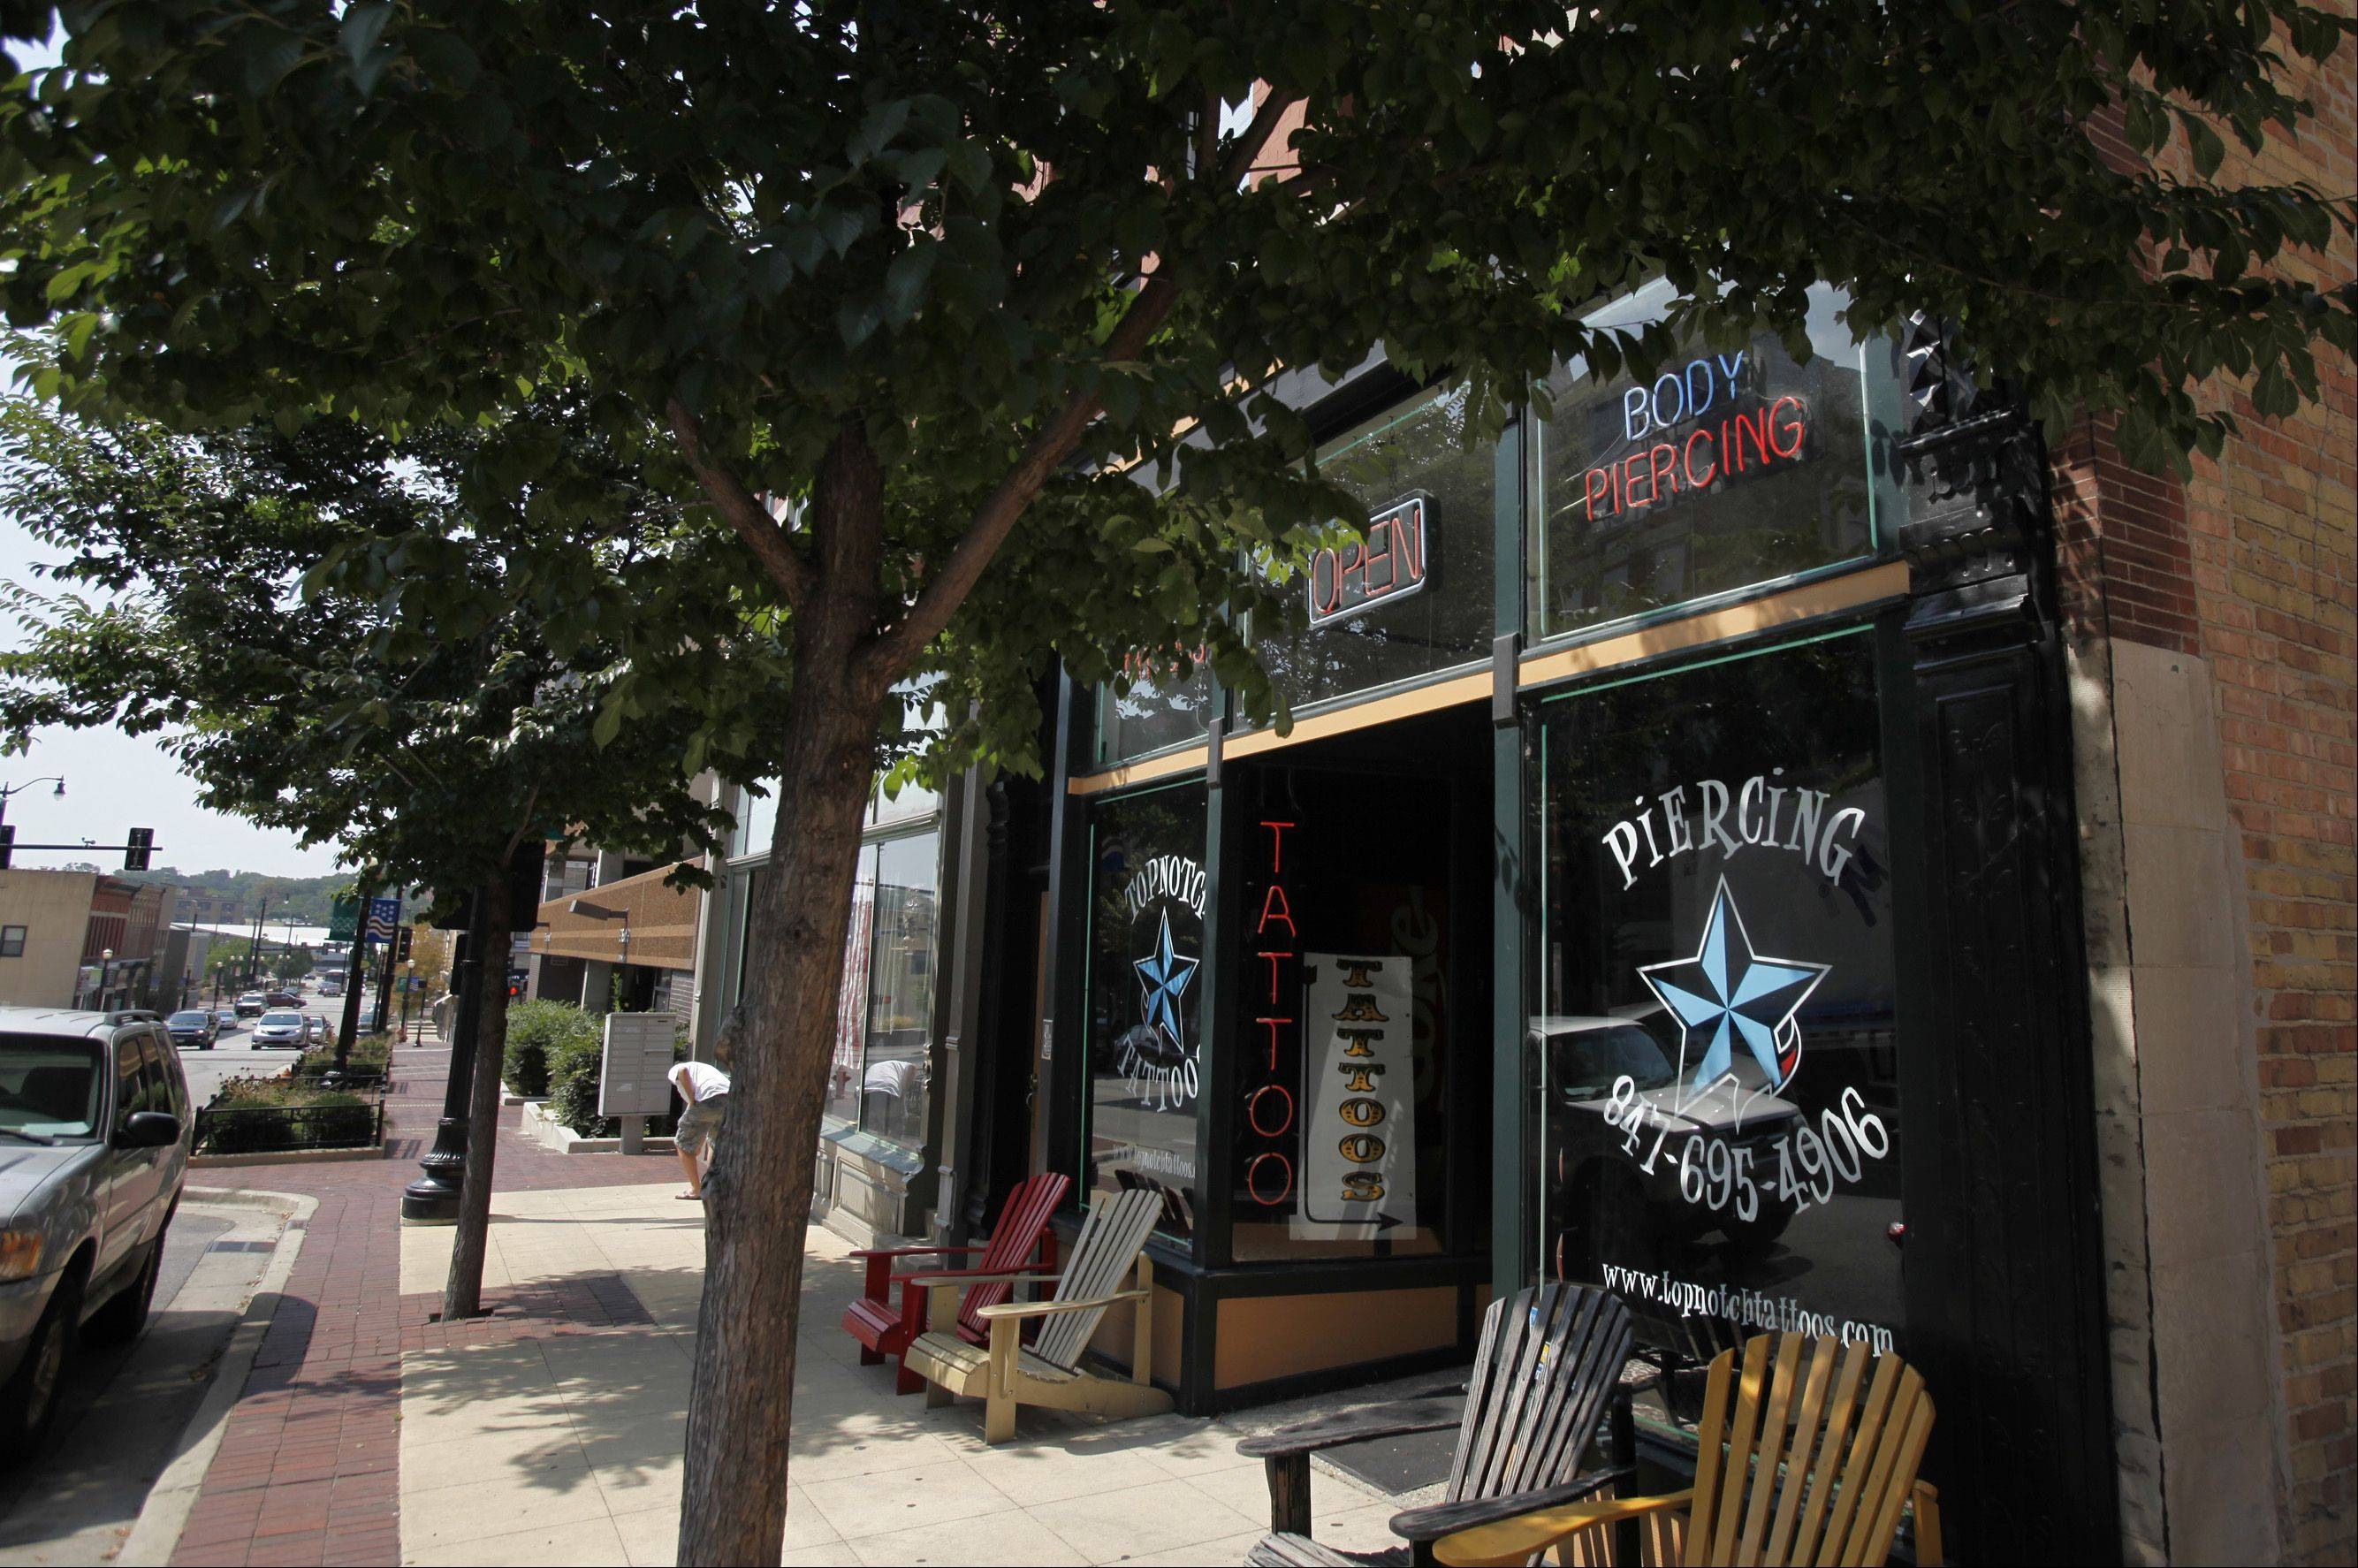 Topnotch Tattoos opened in 1999 in downtown Elgin. Two other tattoo shops are hoping to join the market after their preliminary petitions were granted Wednesday by the Elgin City Council.